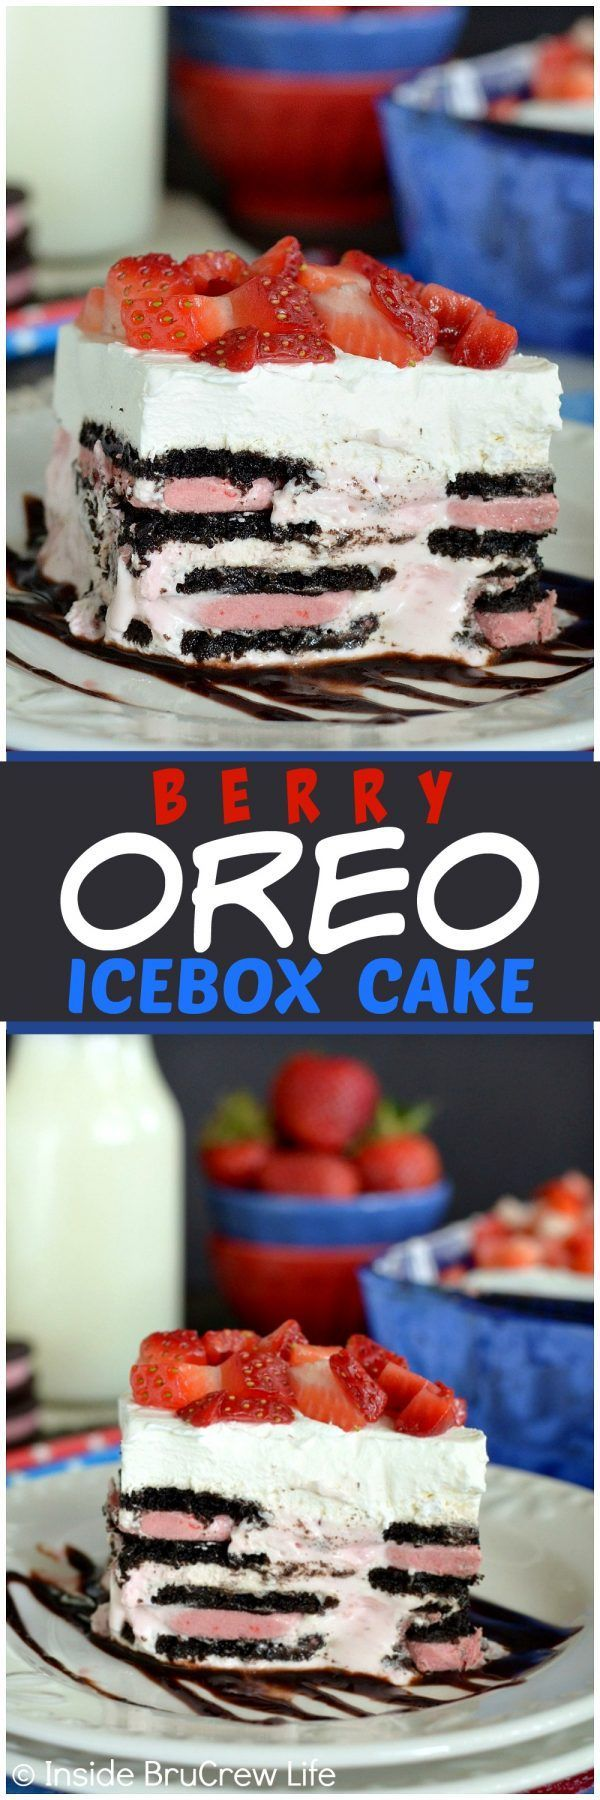 Berry Oreo Icebox Cake - this easy no bake cake has layers of berry Oreos and berry cheesecake. Awesome recipe for hot summer days!